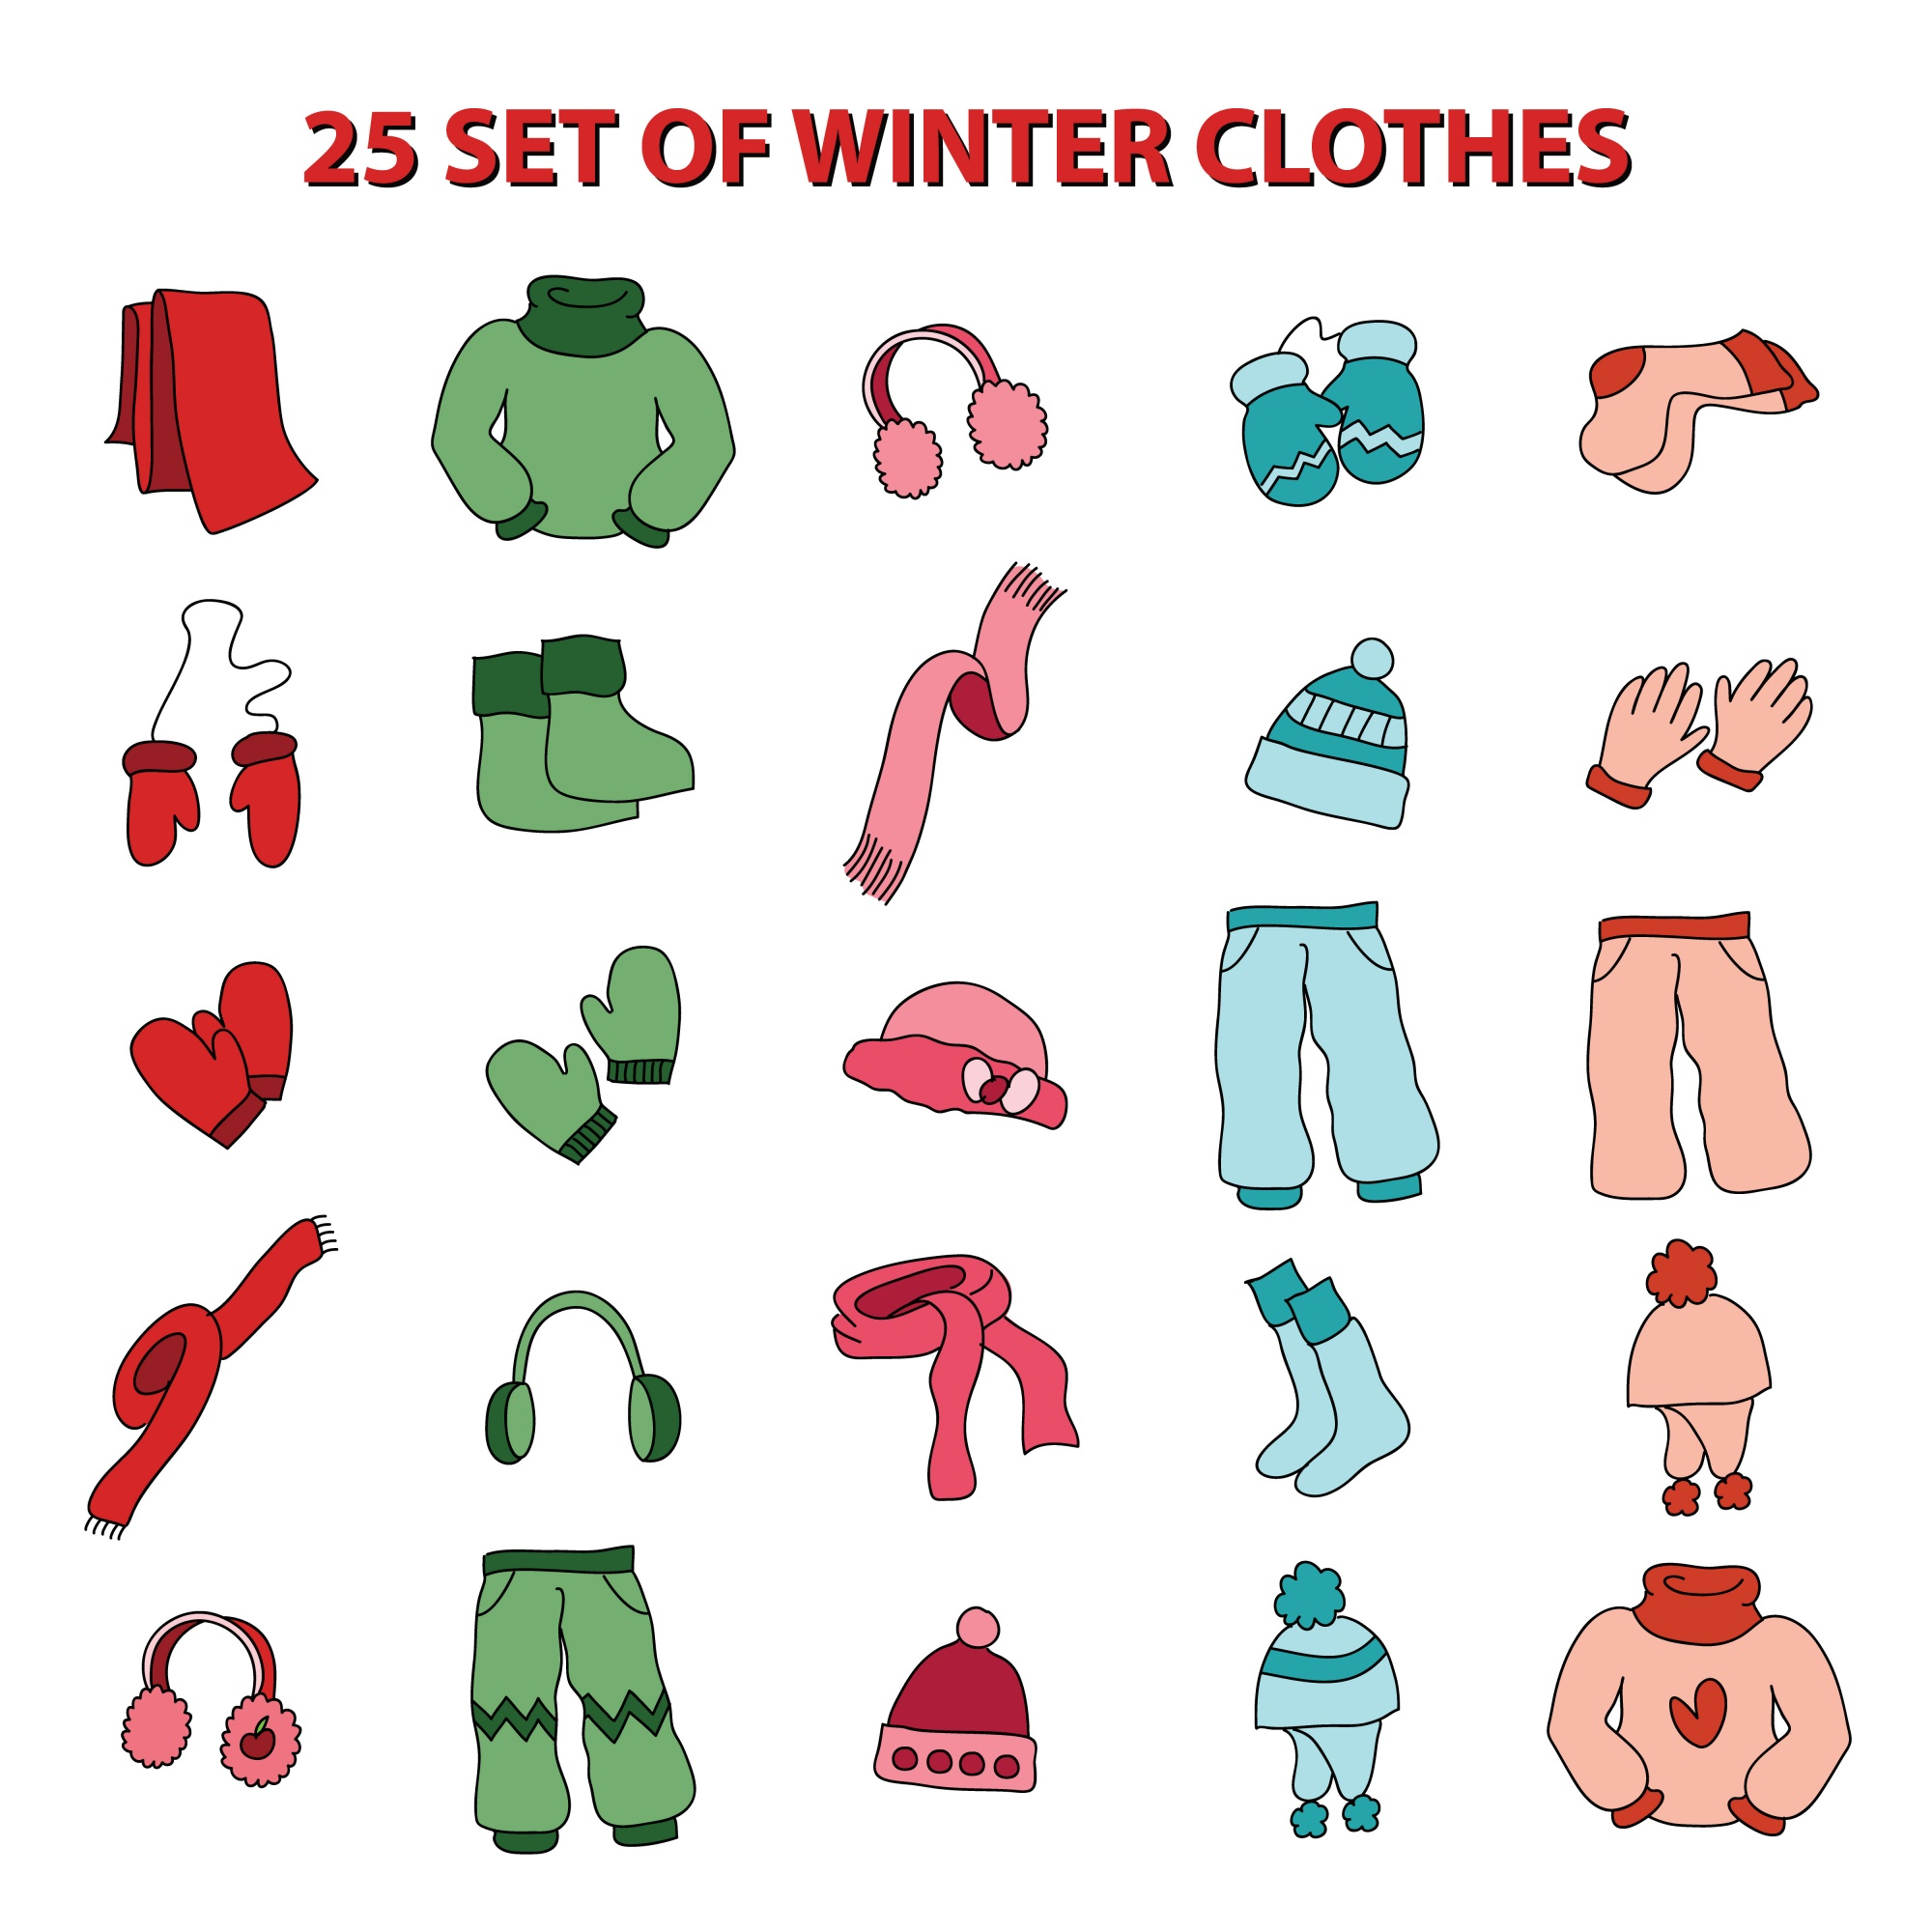 Set of winter apparel / clothes icon. vector illustration